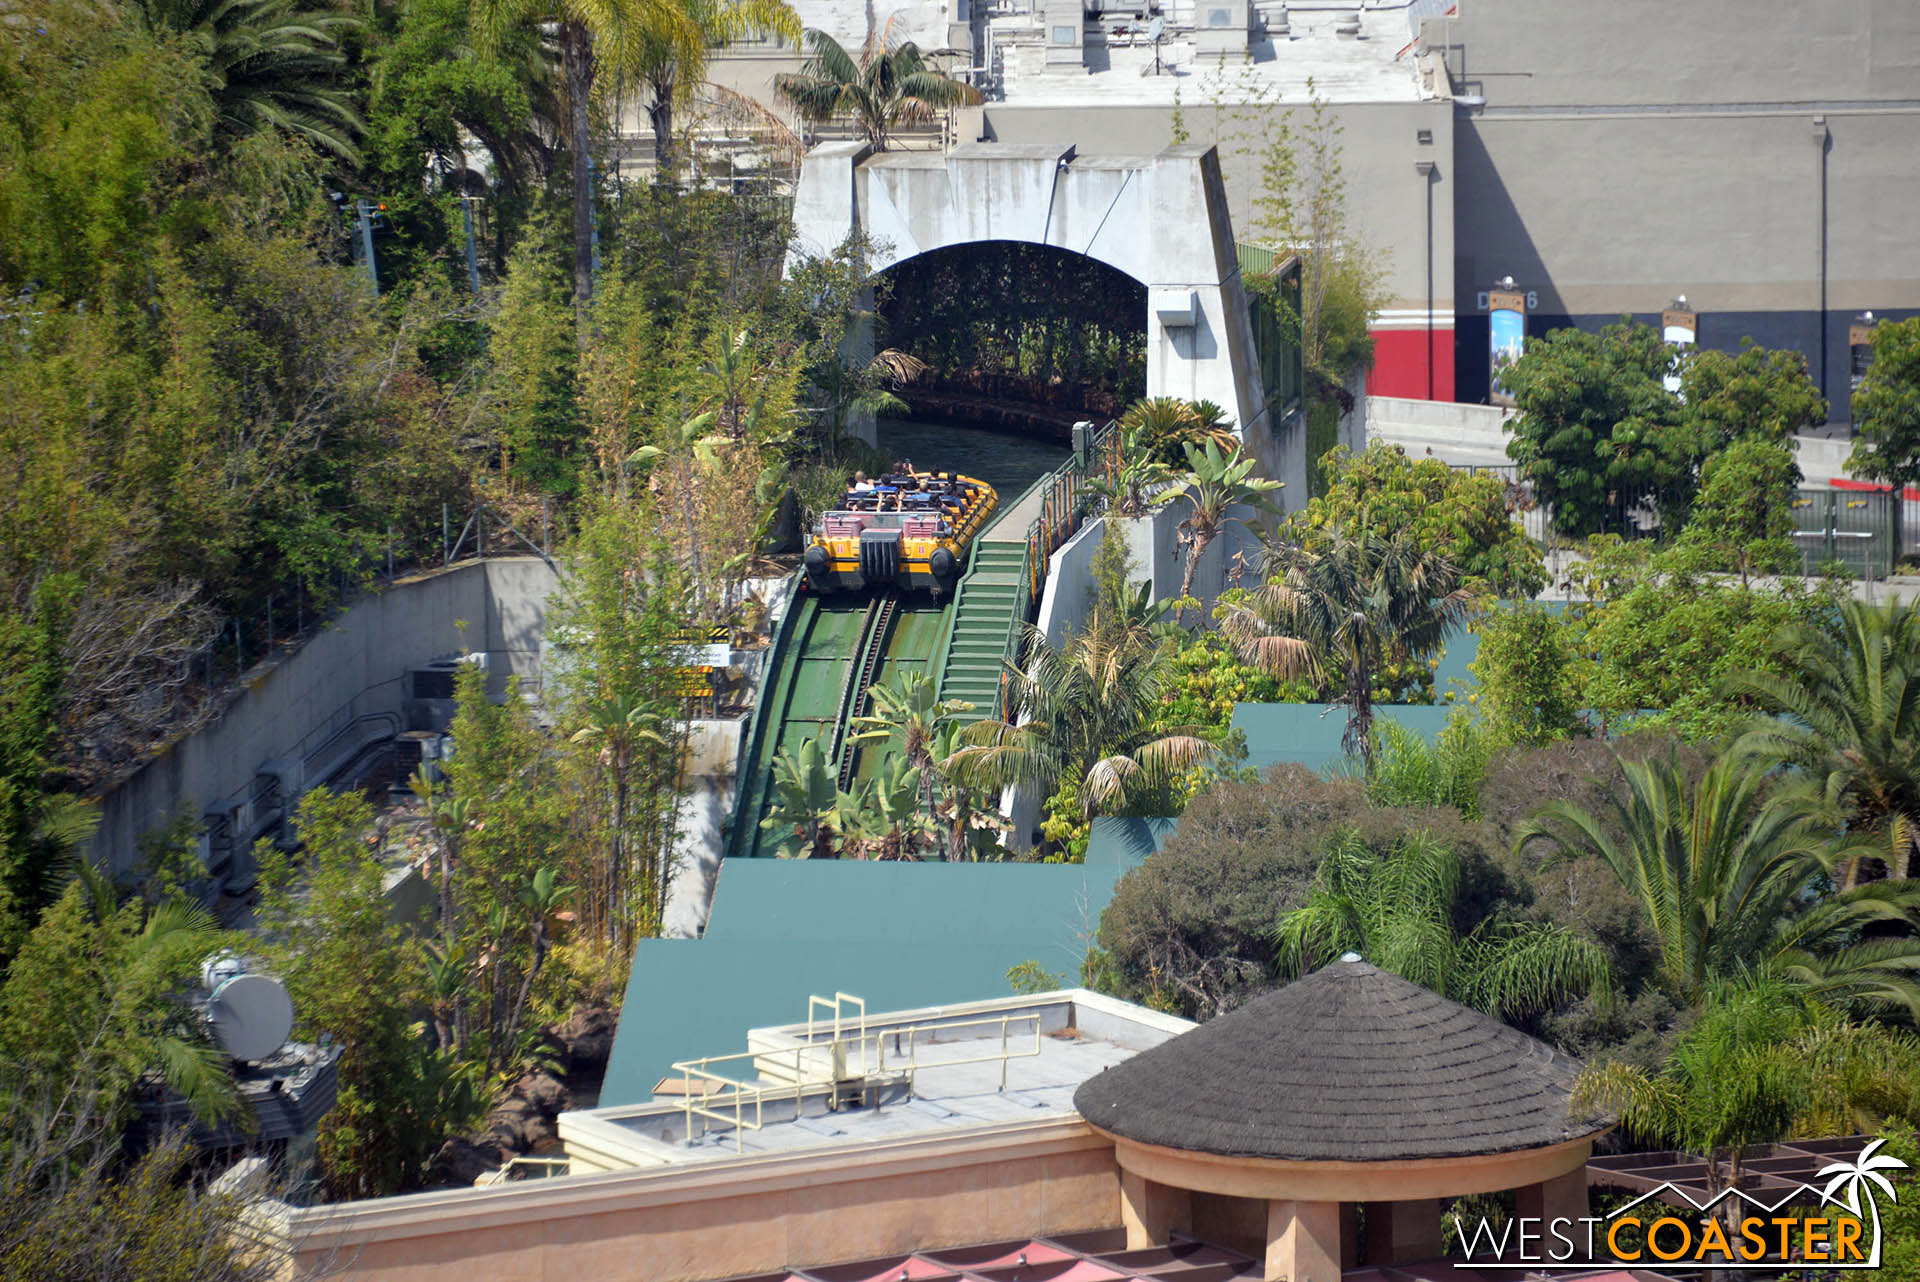 Jurassic Park lift hill is lift hilly.